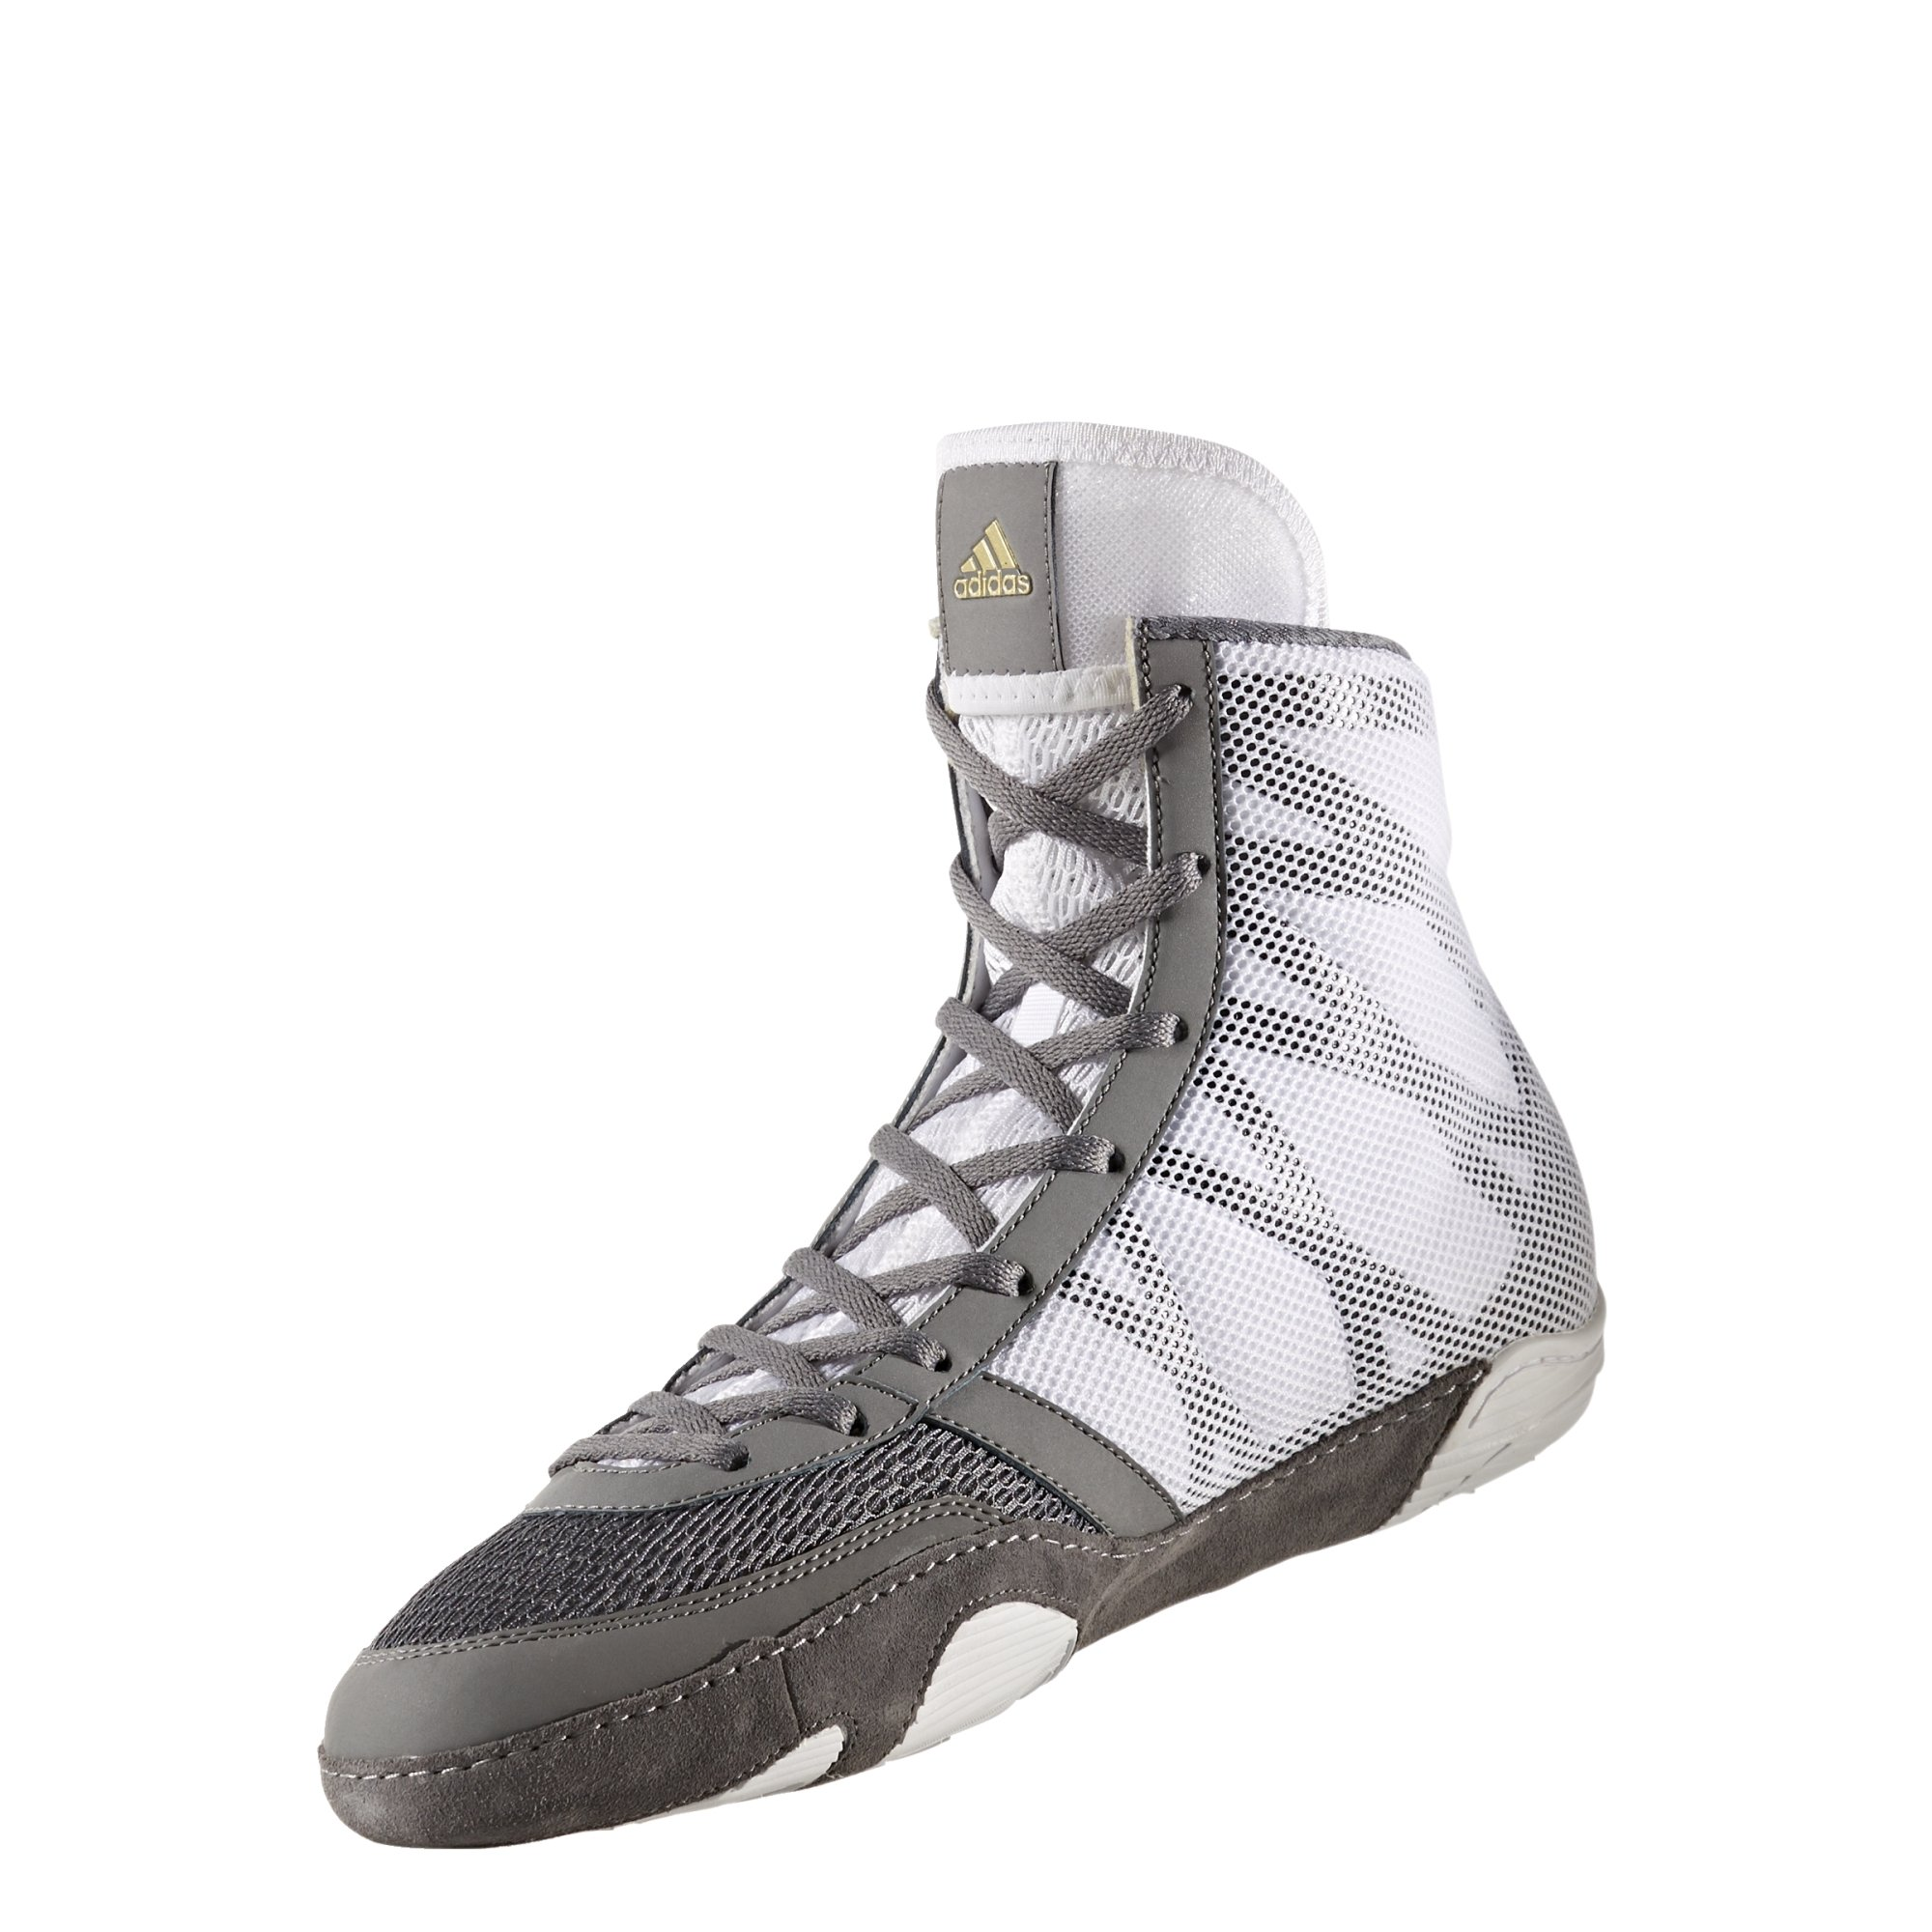 adidas Pretereo III Men's Wrestling Shoes, Grey/Gold/White, Size 6.5 by adidas